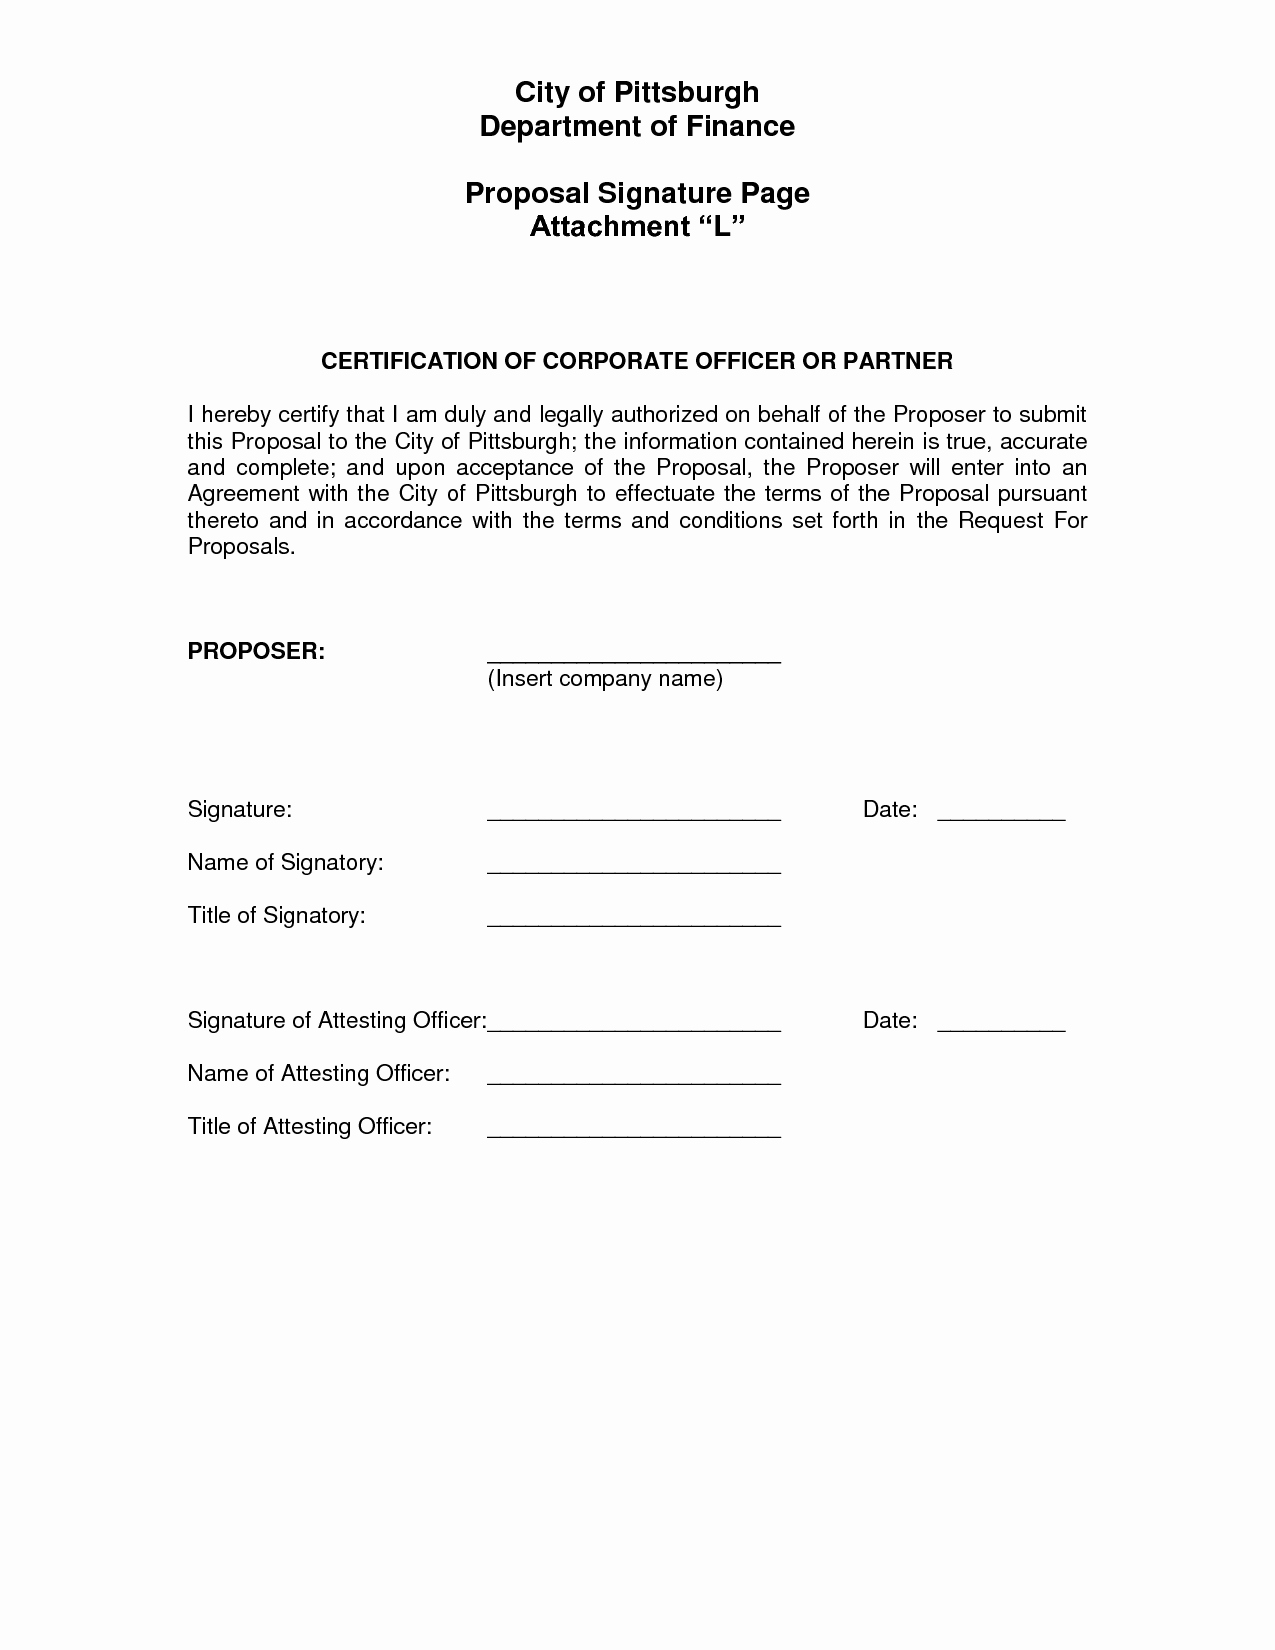 Contract Signature Page Template New Best S Of Sample Contract Signature Page Notary